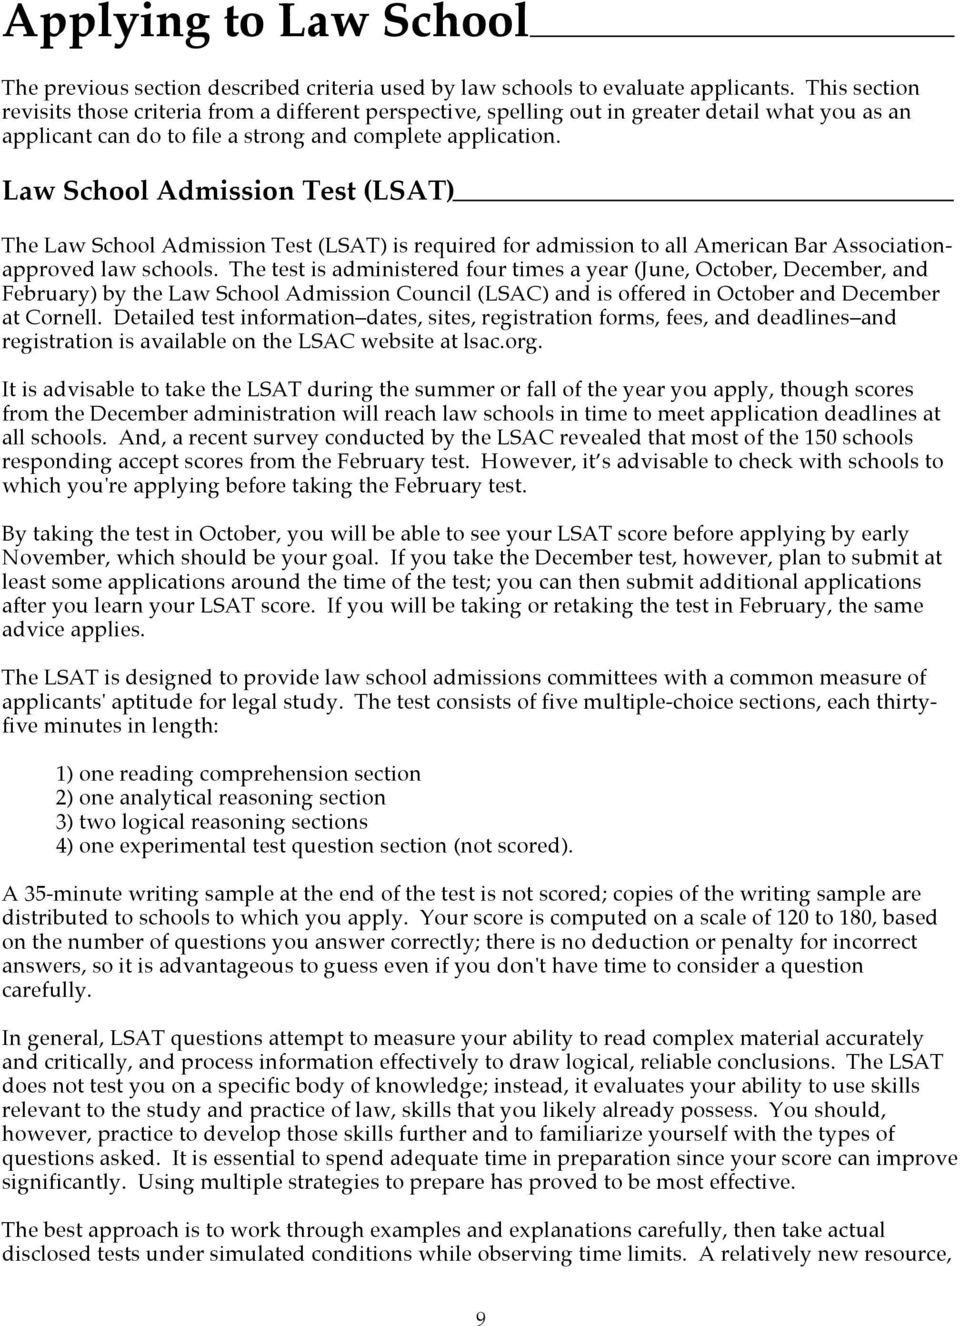 Law School Admission Test (LSAT) The Law School Admission Test (LSAT) is required for admission to all American Bar Associationapproved law schools.